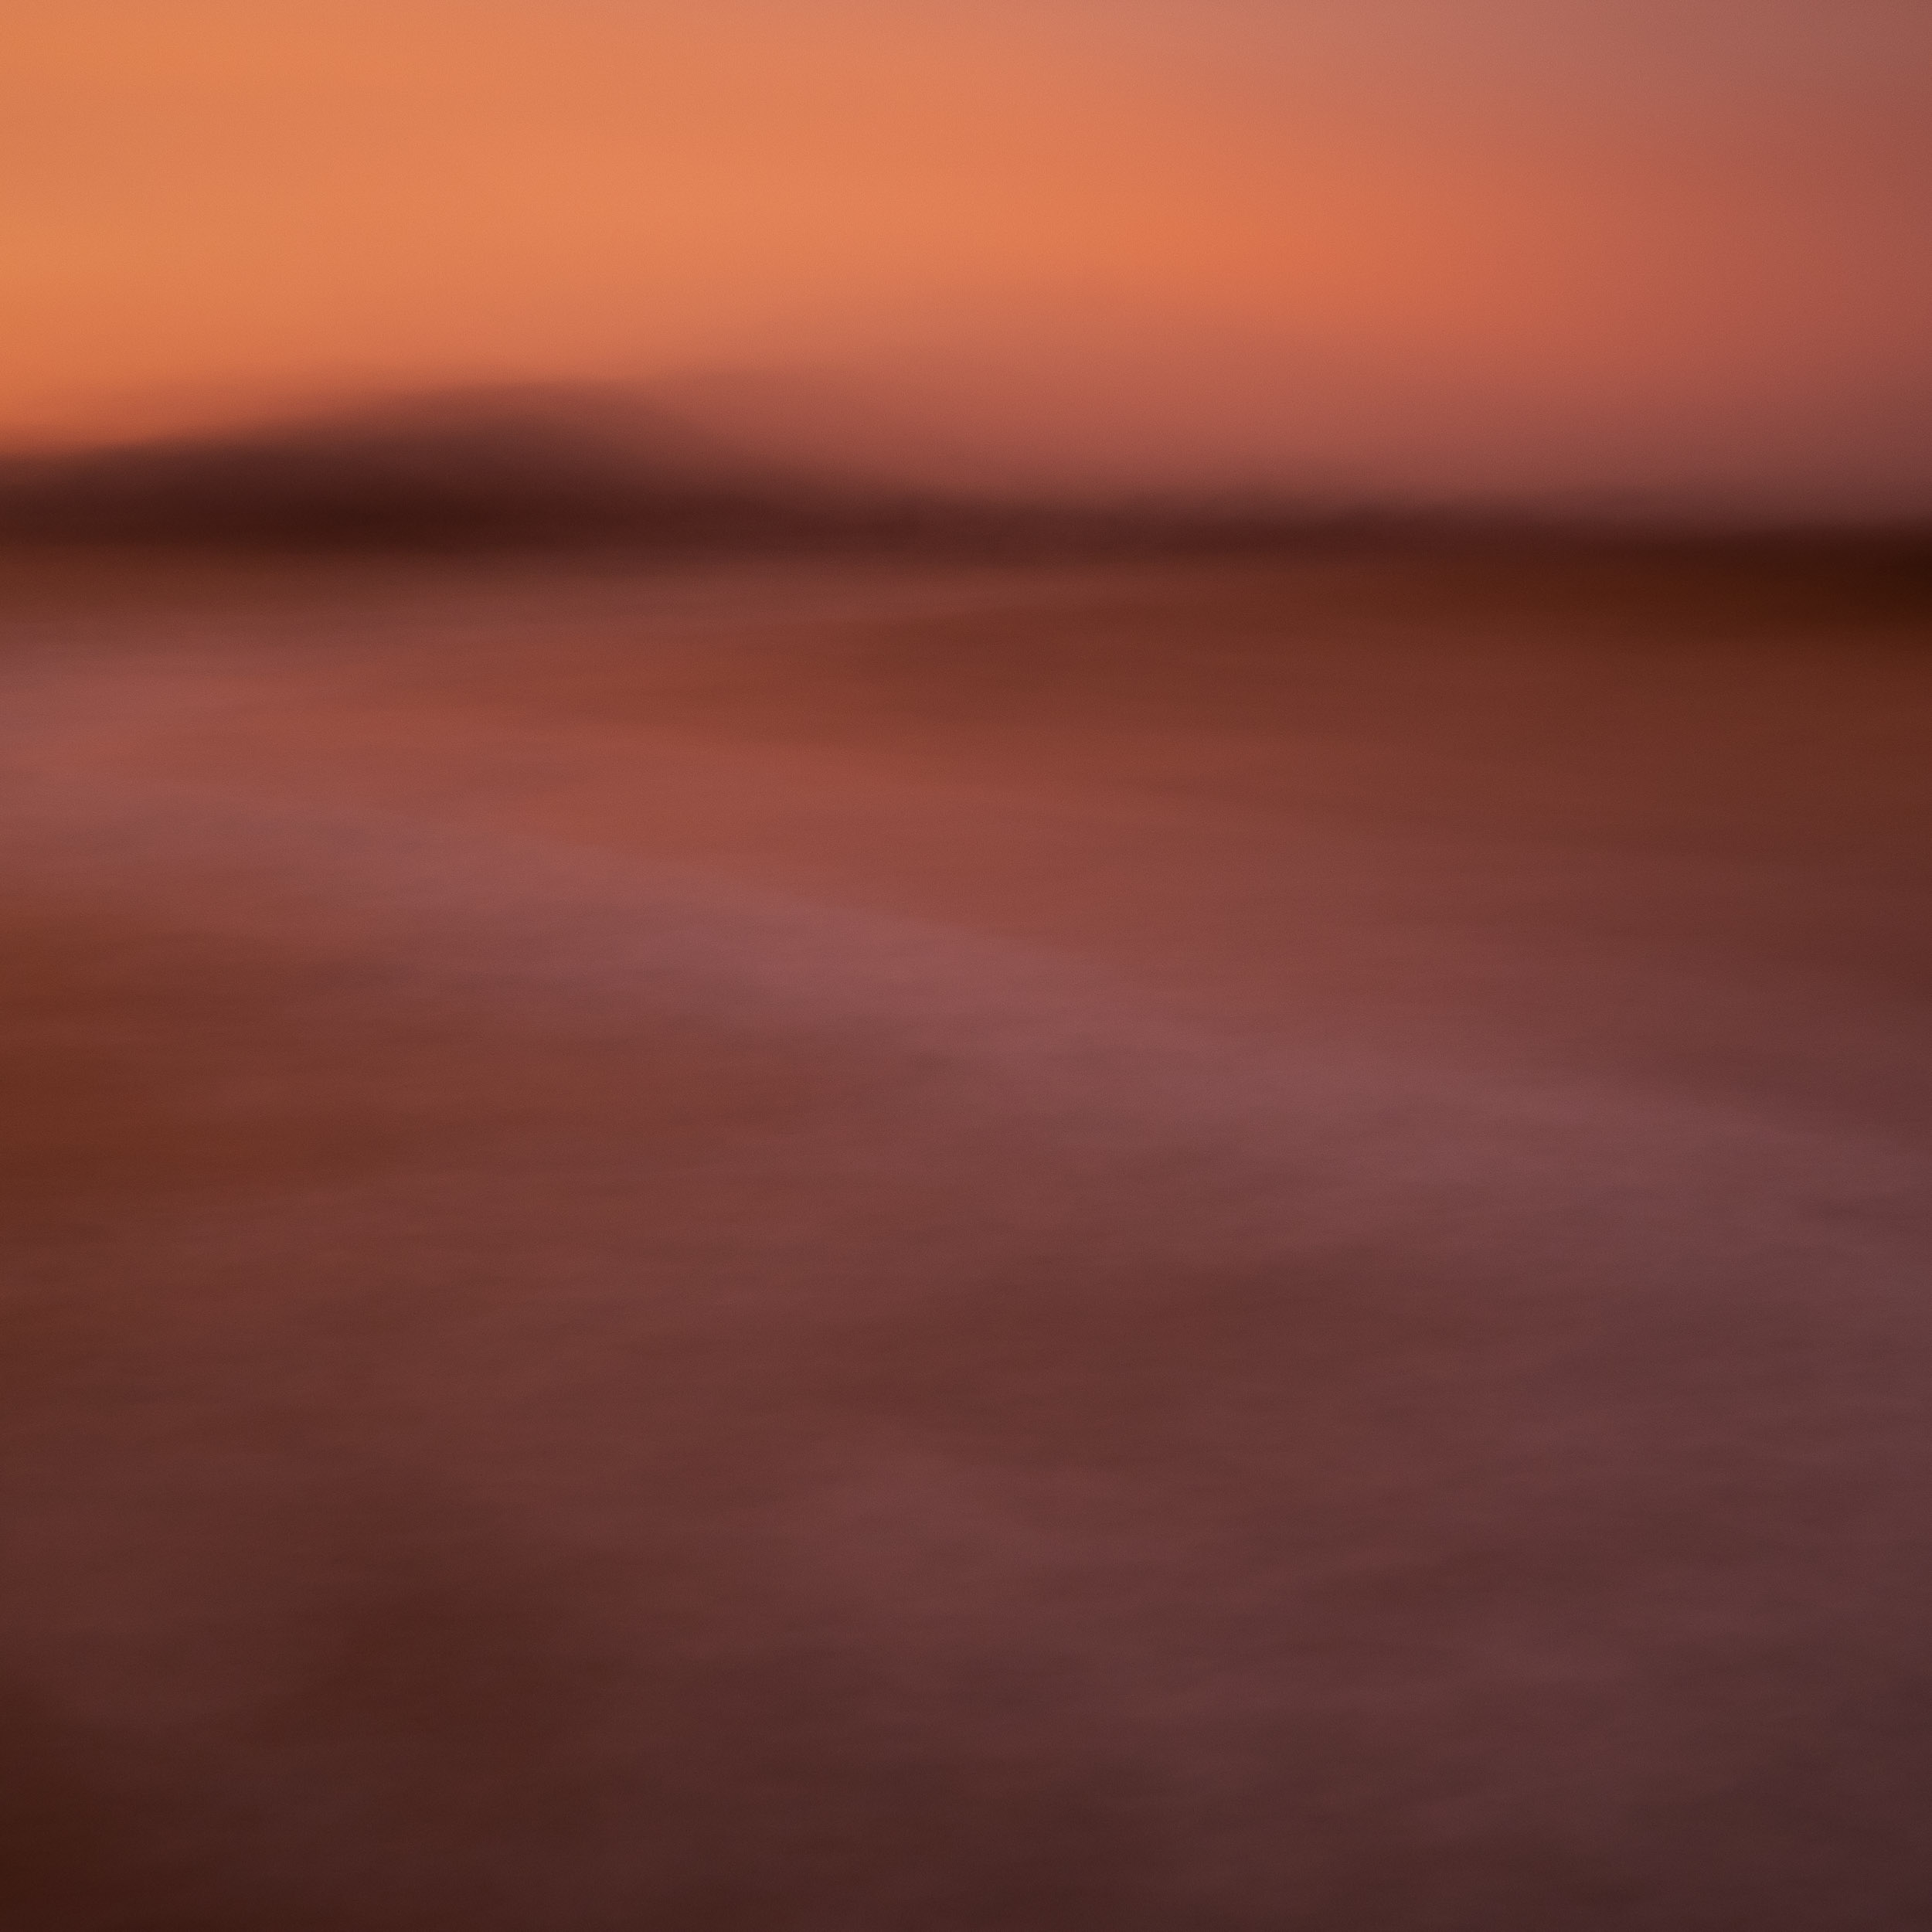 Keep the camera still. This long exposure was created by moving the camera for 30 or more seconds.